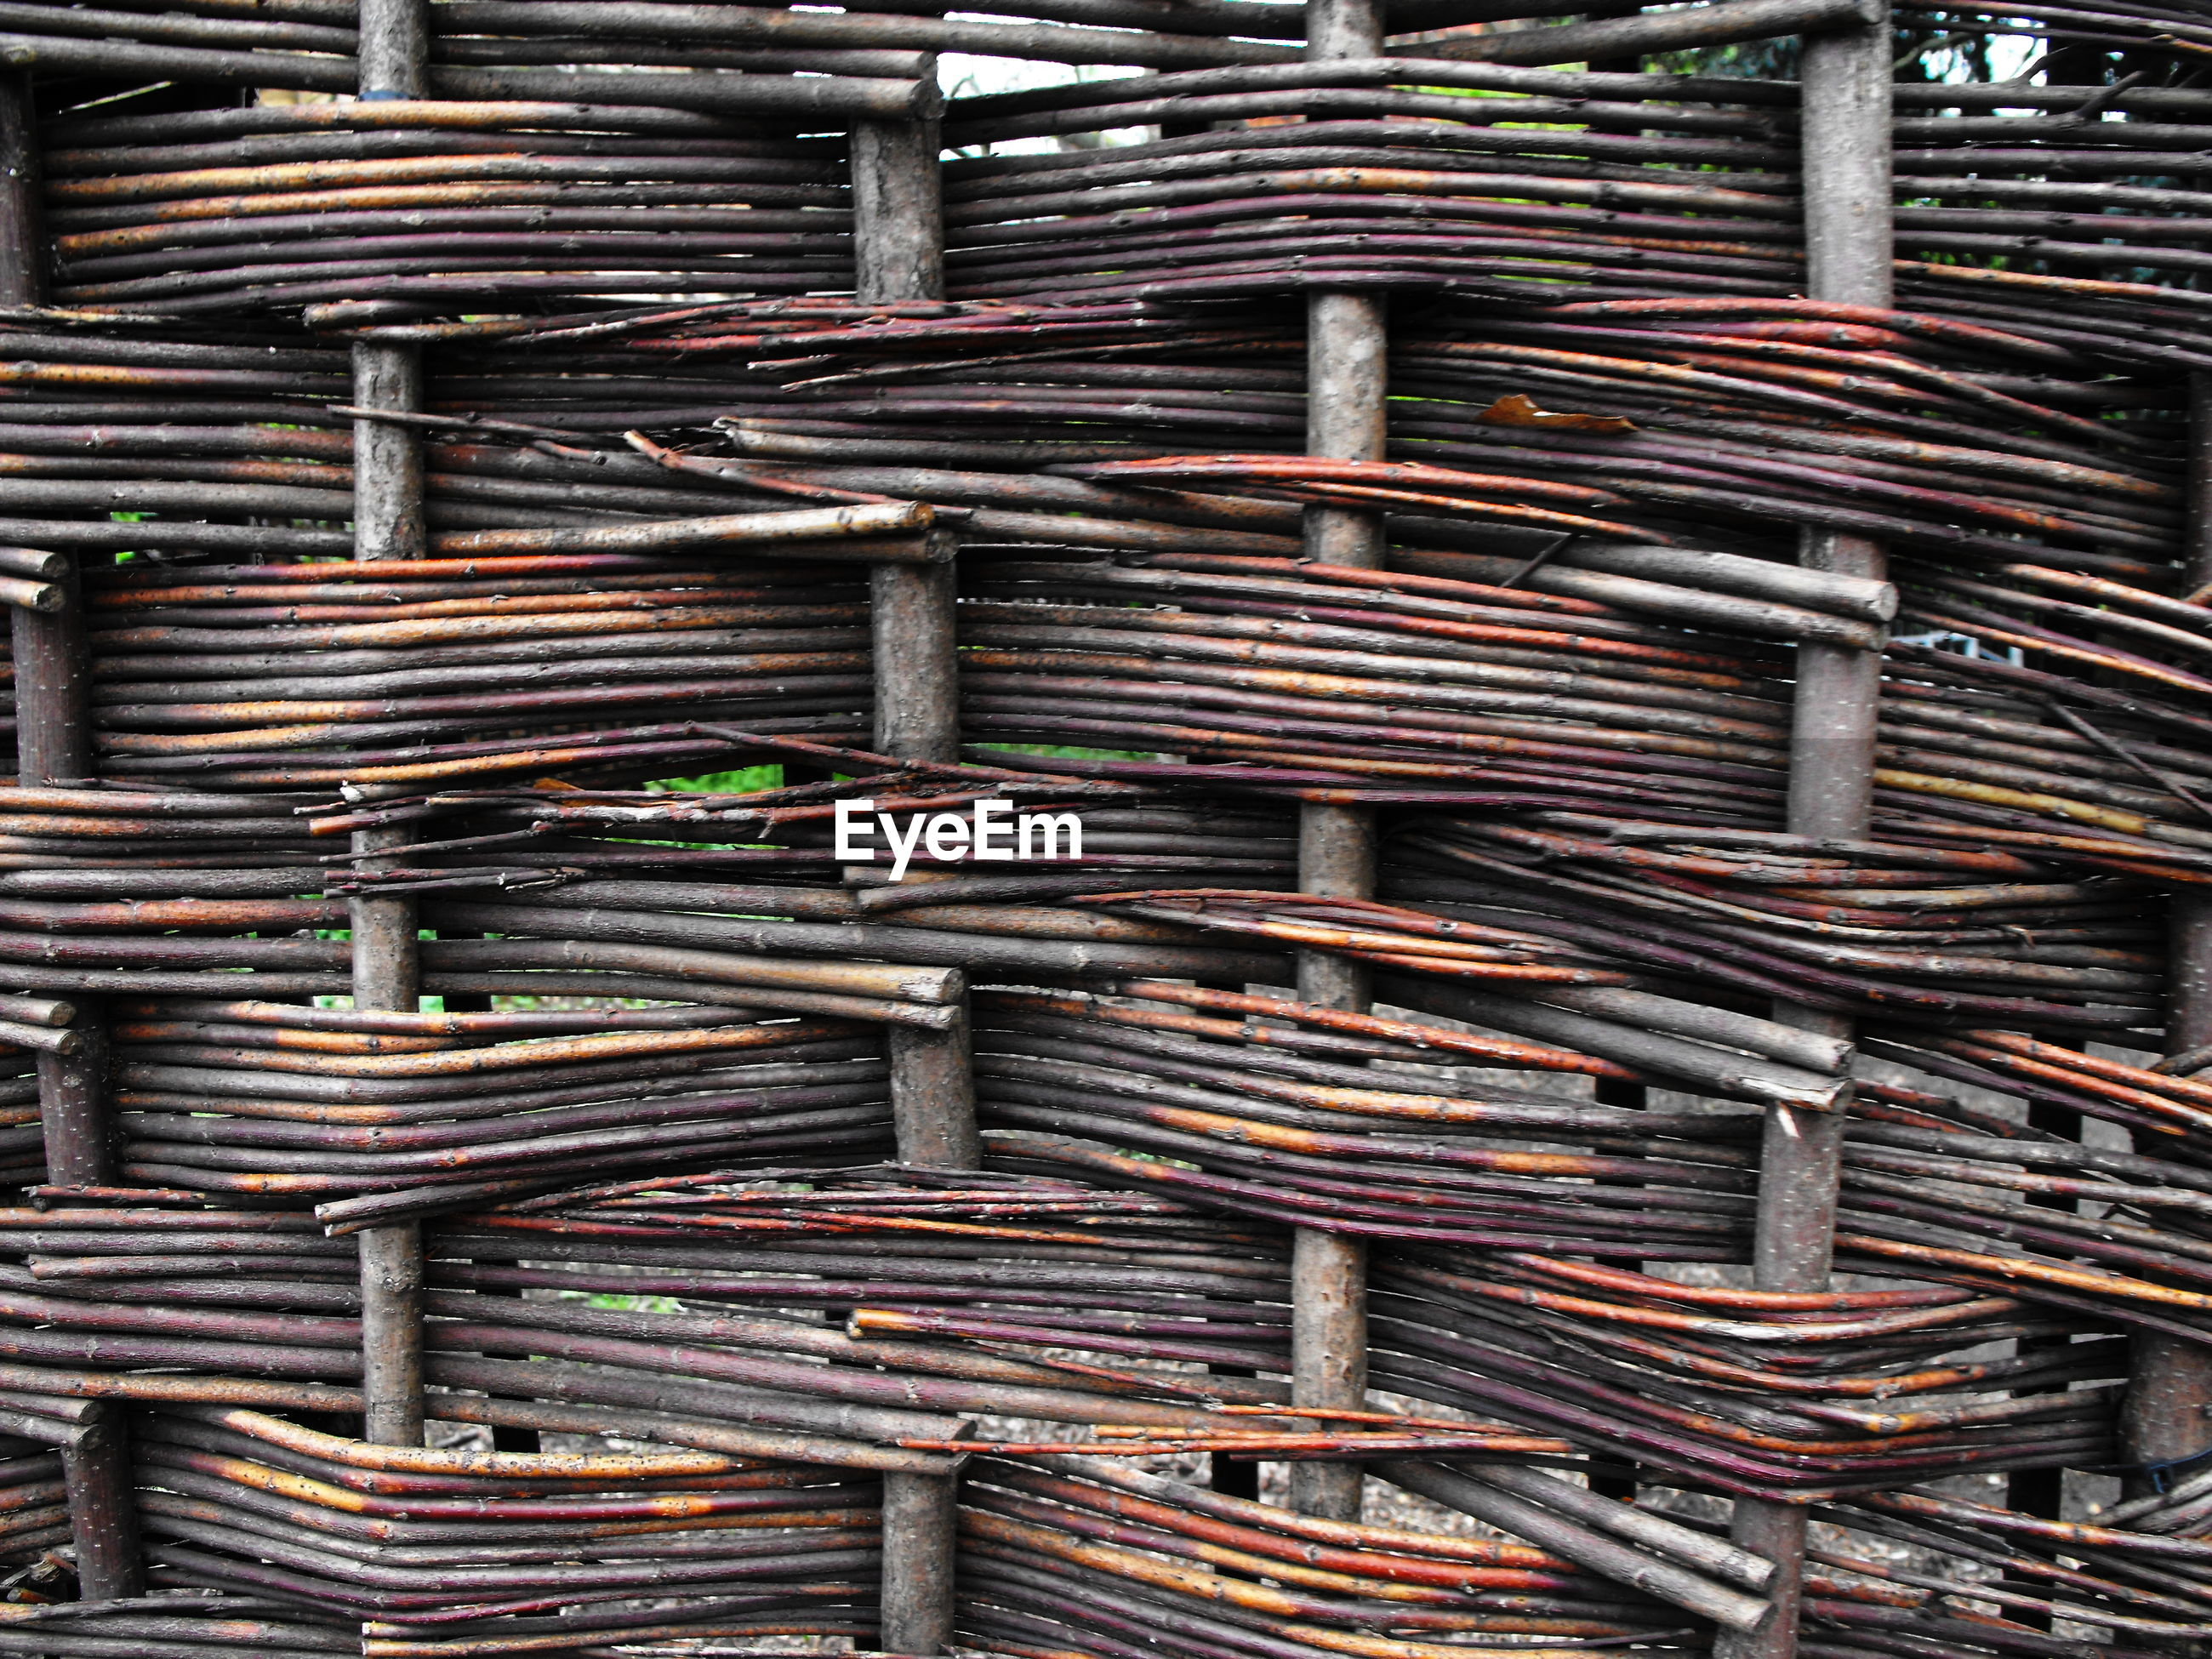 full frame, abundance, stack, large group of objects, no people, backgrounds, industry, day, metal, order, in a row, outdoors, technology, close-up, connection, cable, heap, rusty, factory